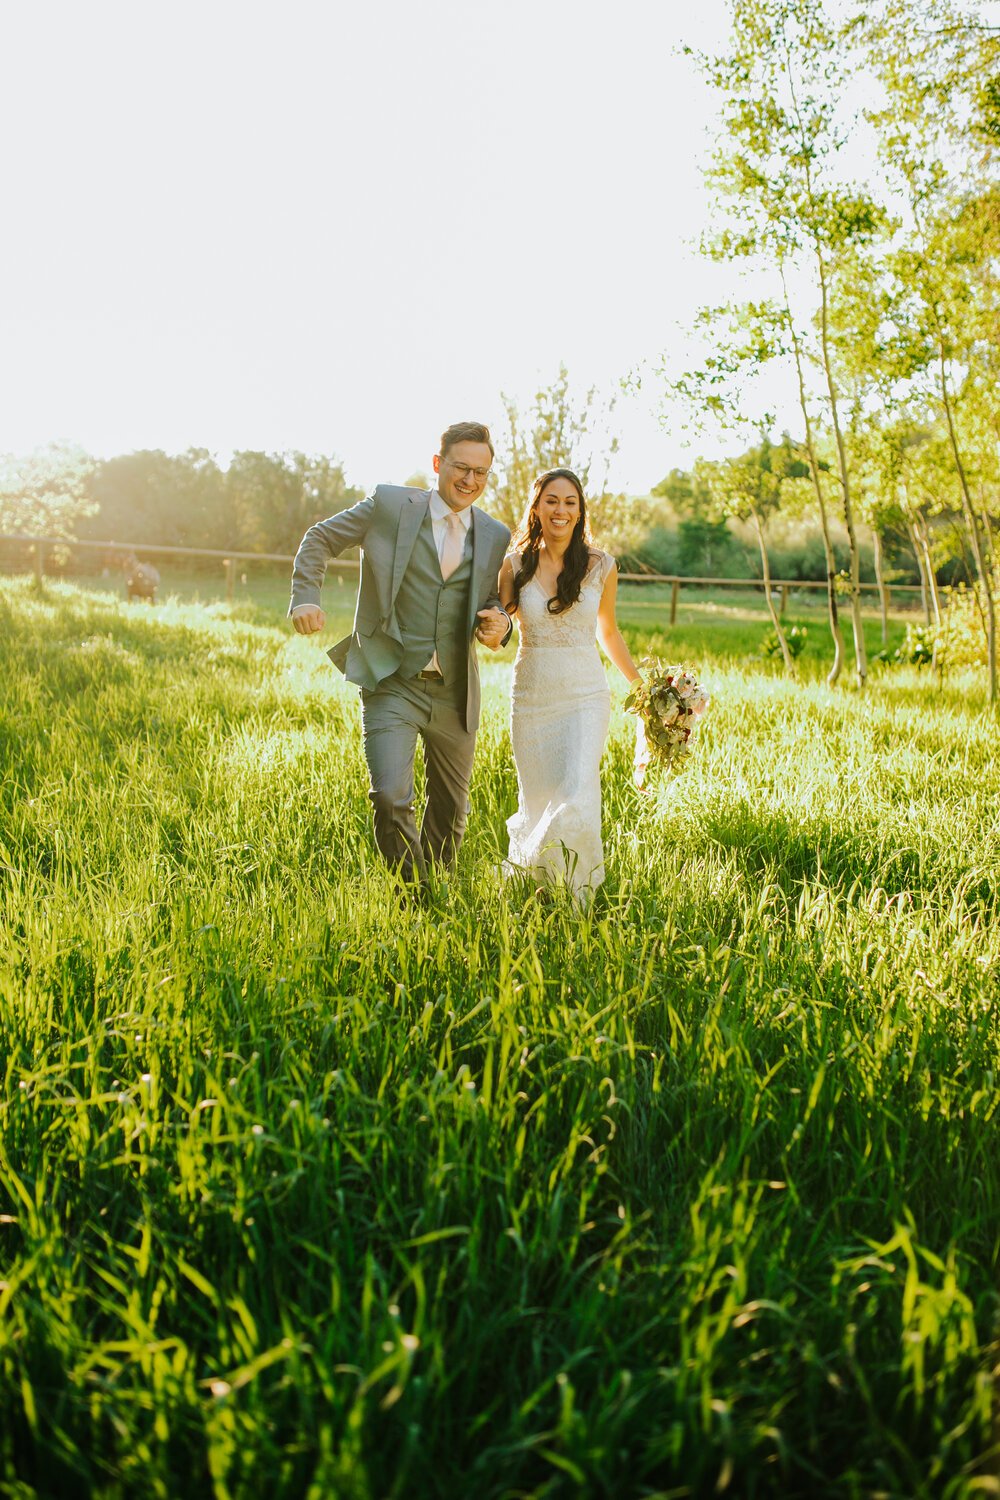 summer_wedding_outdoors_southern_traditions_joyful_knoxville_bride_couple_walking_grass_field_holding_hands_tennessee_photographer_look_for_the_light_photo_video